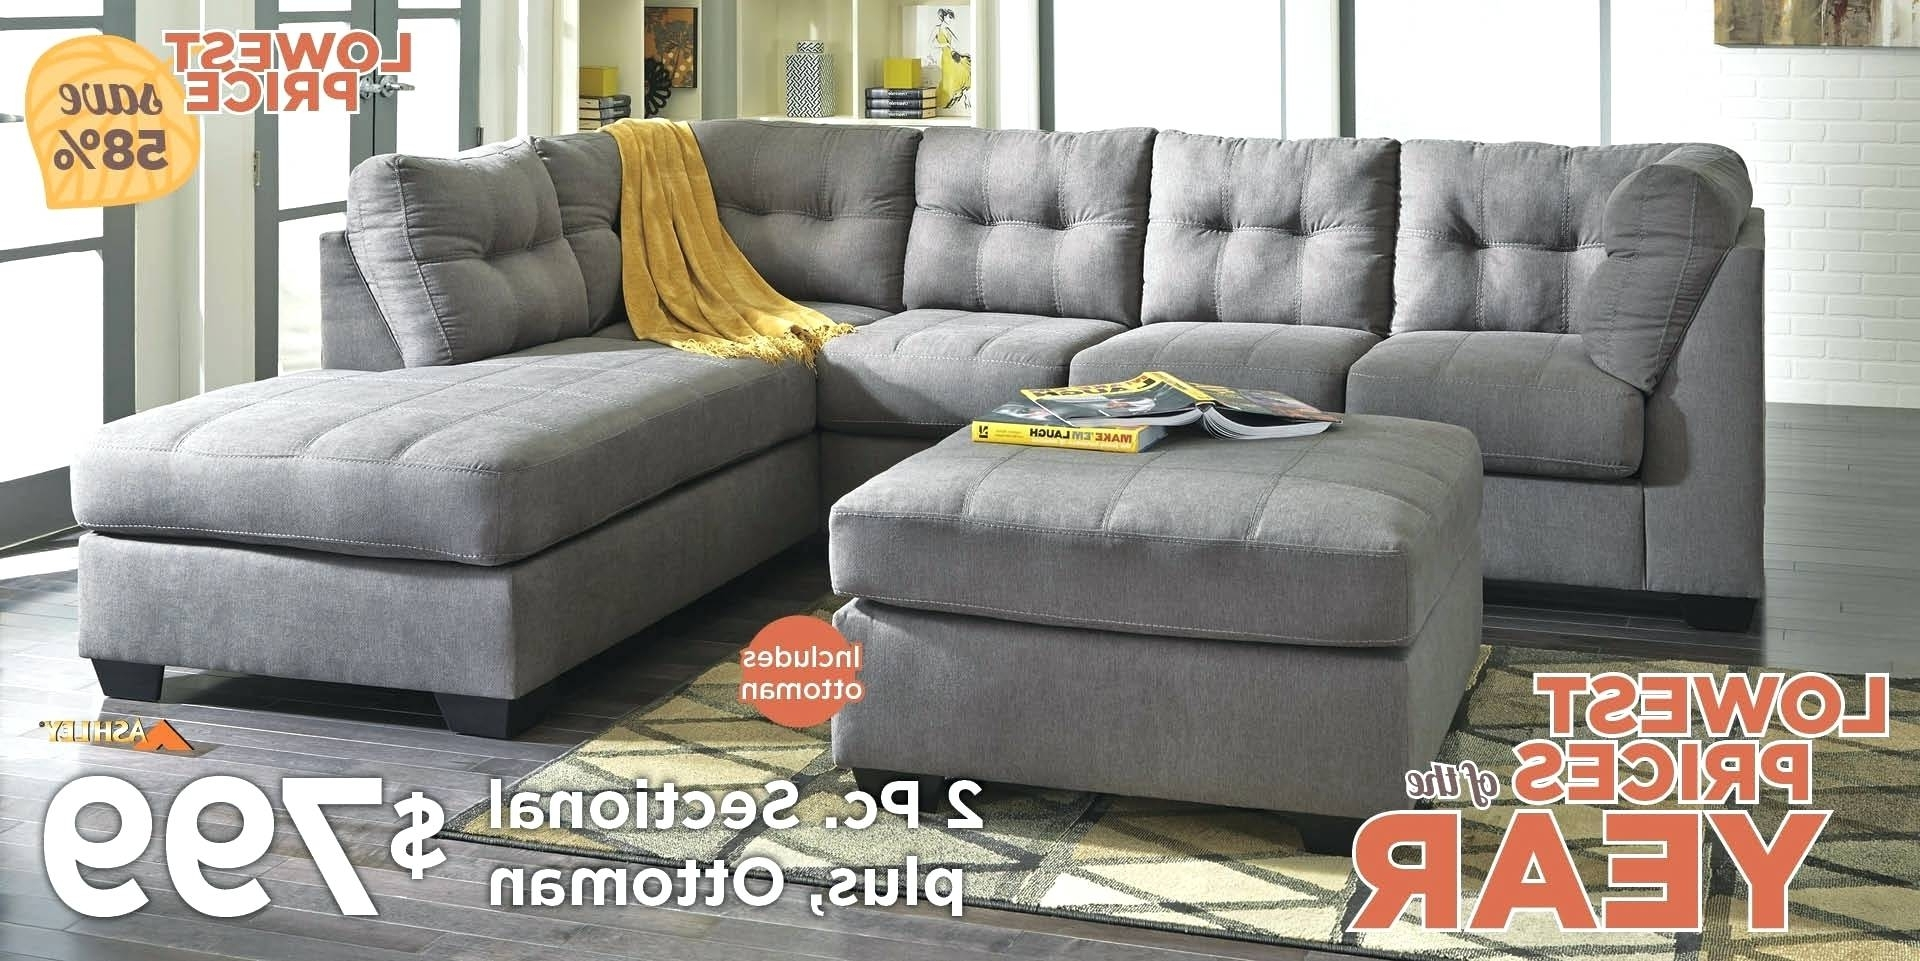 Well Known Sam Levitz Sectional Sofas In Sam Levitz Furniture Tucson Az Two Piece Sectional With Full (View 14 of 15)